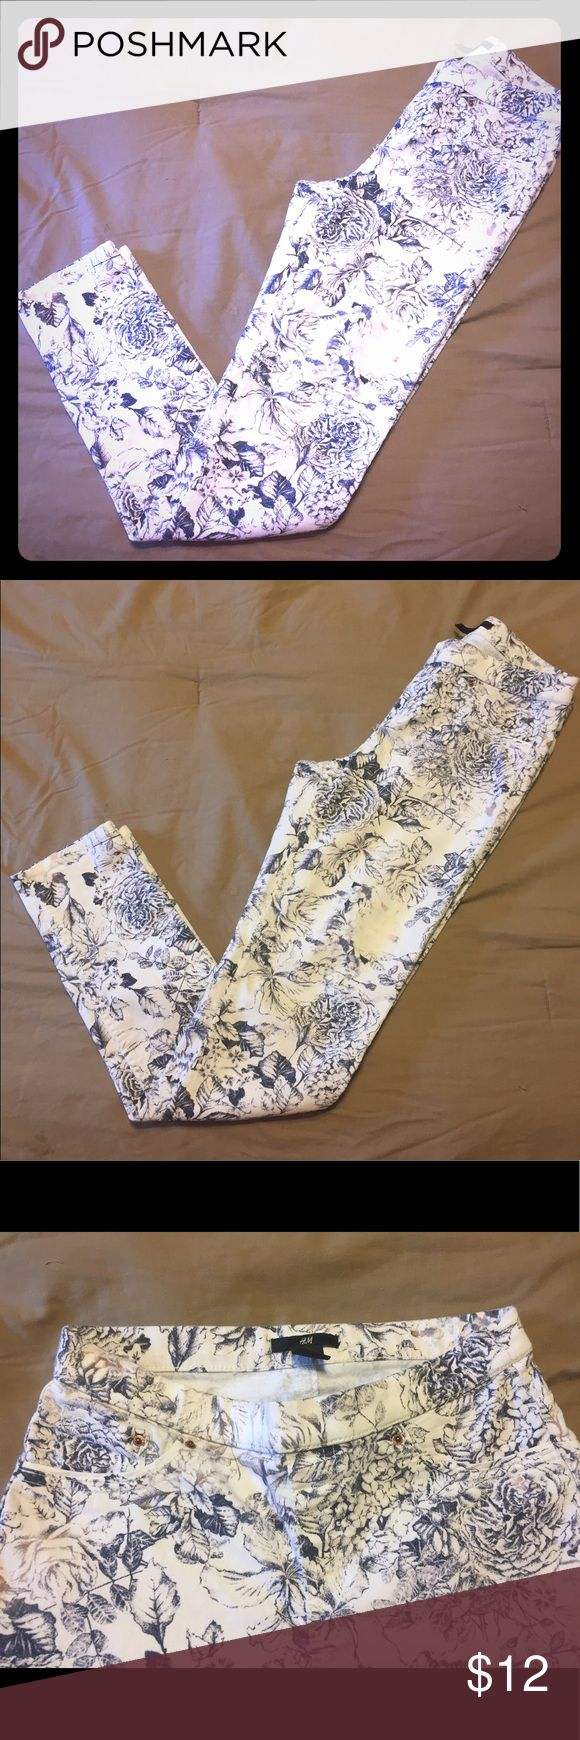 ⭐️ SALE ⭐️ H&M Floral Jeans Floral Print Jeans with elastic waistband H&M Jeans Skinny